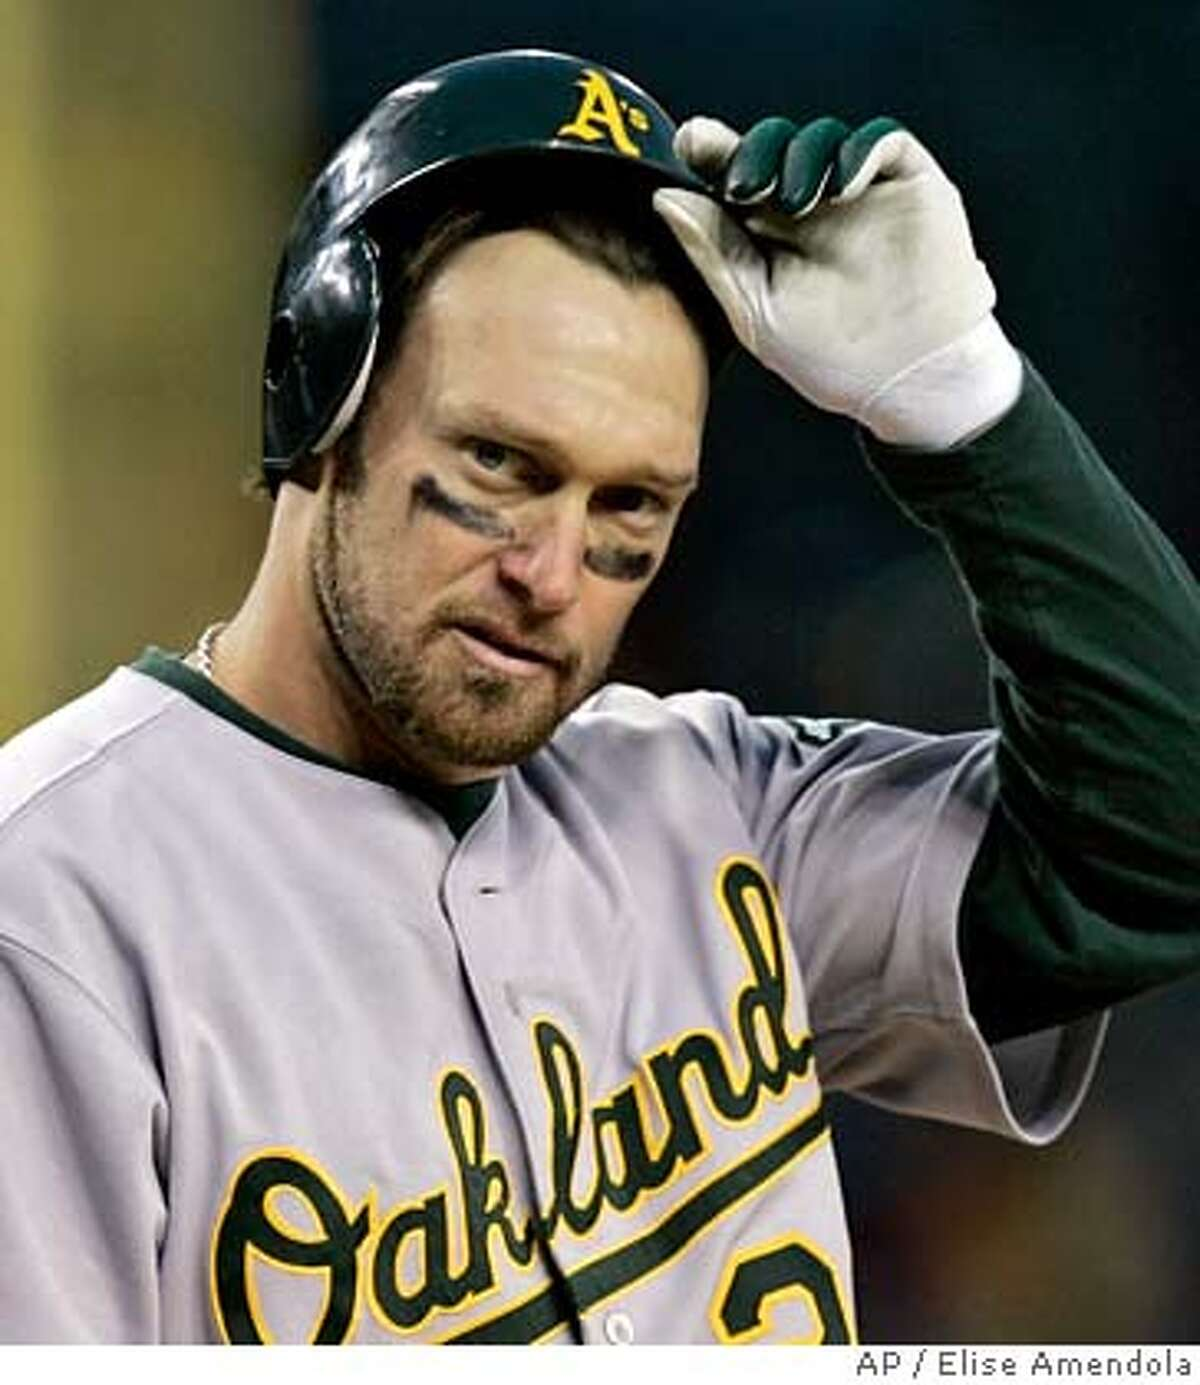 Oakland Athletics' Mark Kotsay takes off his helmet after striking out in the seventh inning leaving one man on in Game 4 of the American League Championship Series in Detroit, Saturday, Oct. 14, 2006. (AP Photo/Elise Amendola)